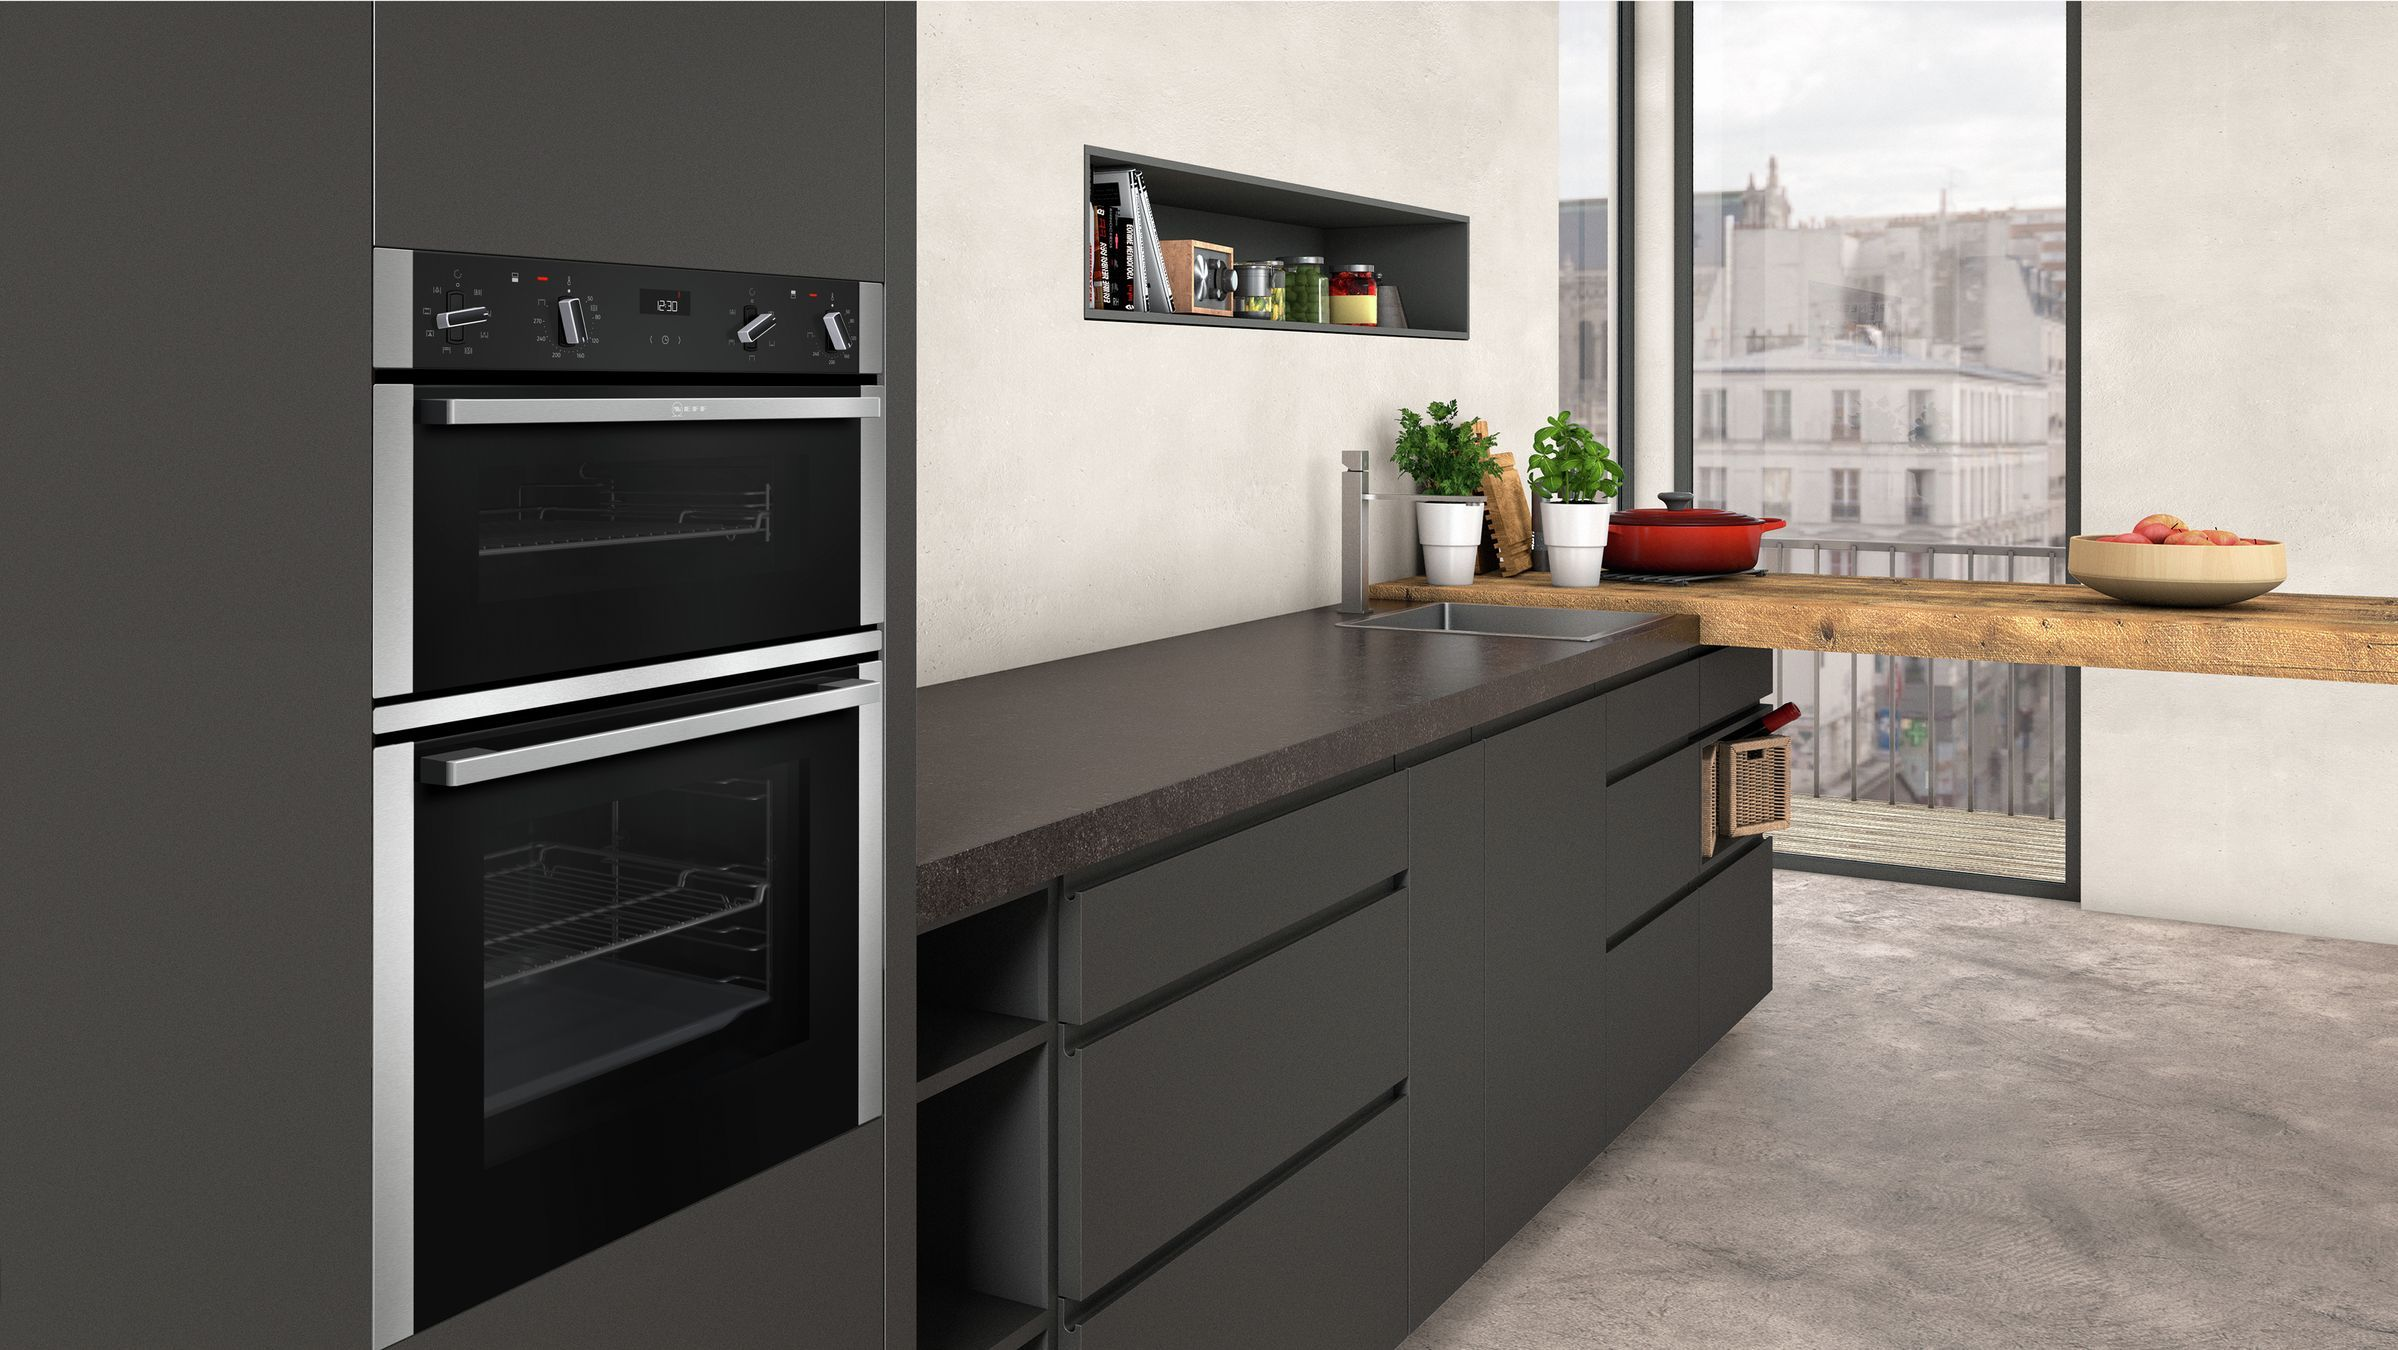 Küche Poggenpohl Ebay N 50 U1ace2hn0b Black In 2018 Kitchen Pinterest Oven